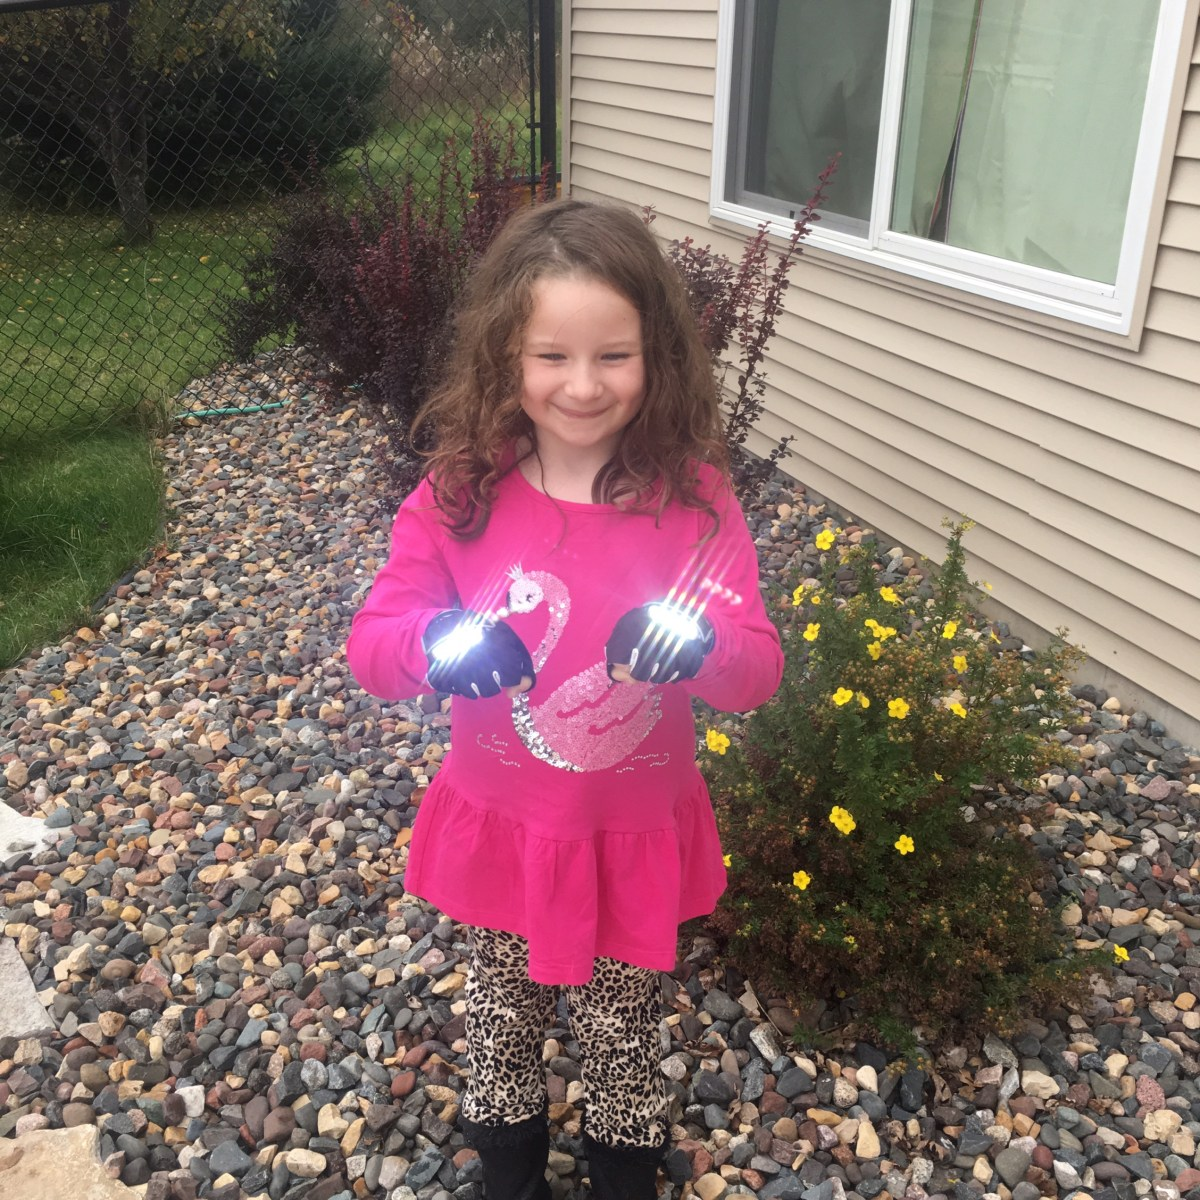 Runlites LED lighted gloves